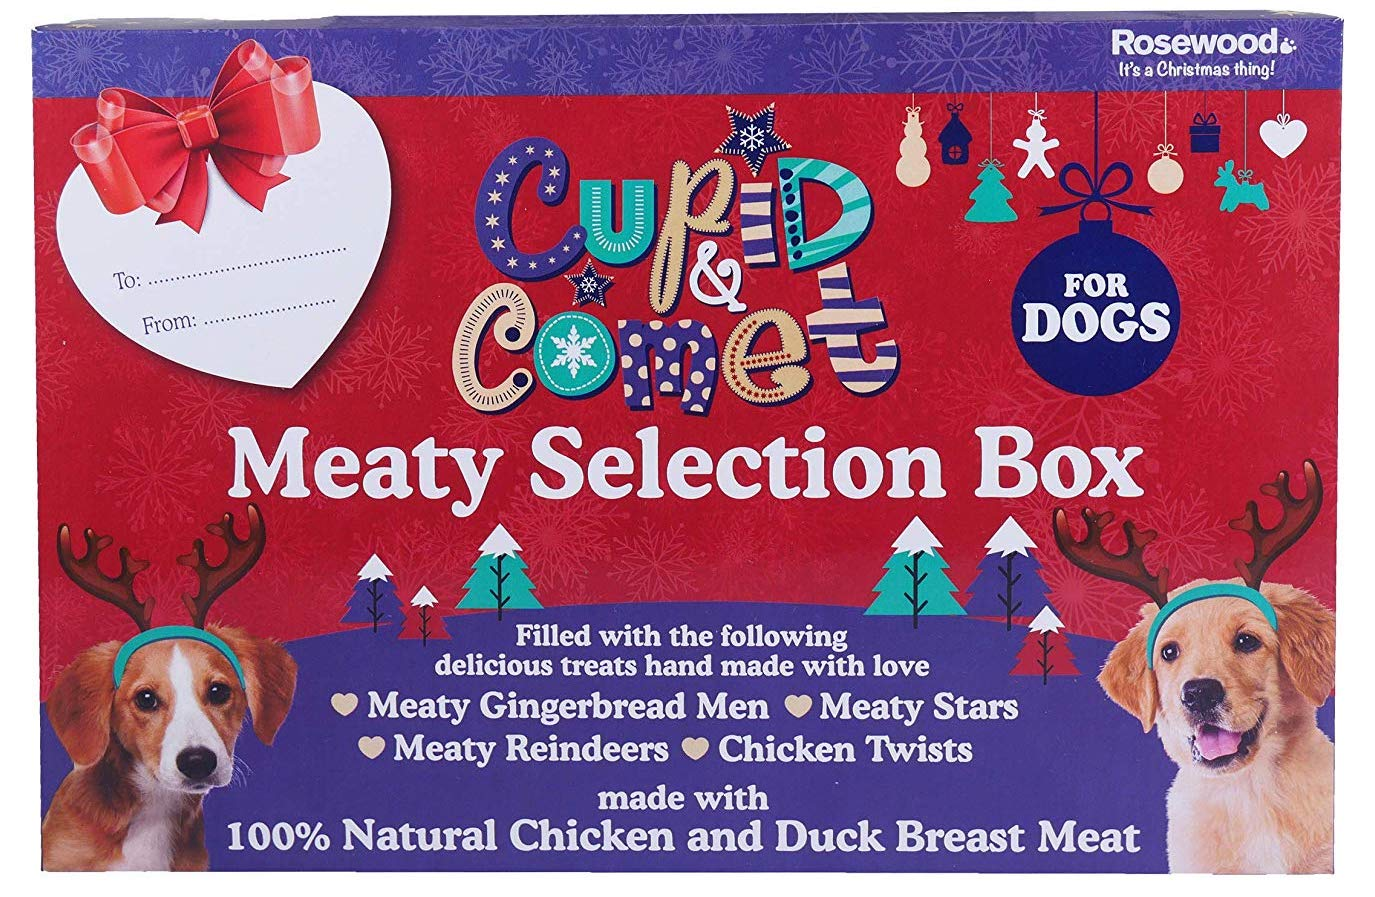 Stock image of a meaty selection box for dogs for my Christmas gifts for dogs guide.